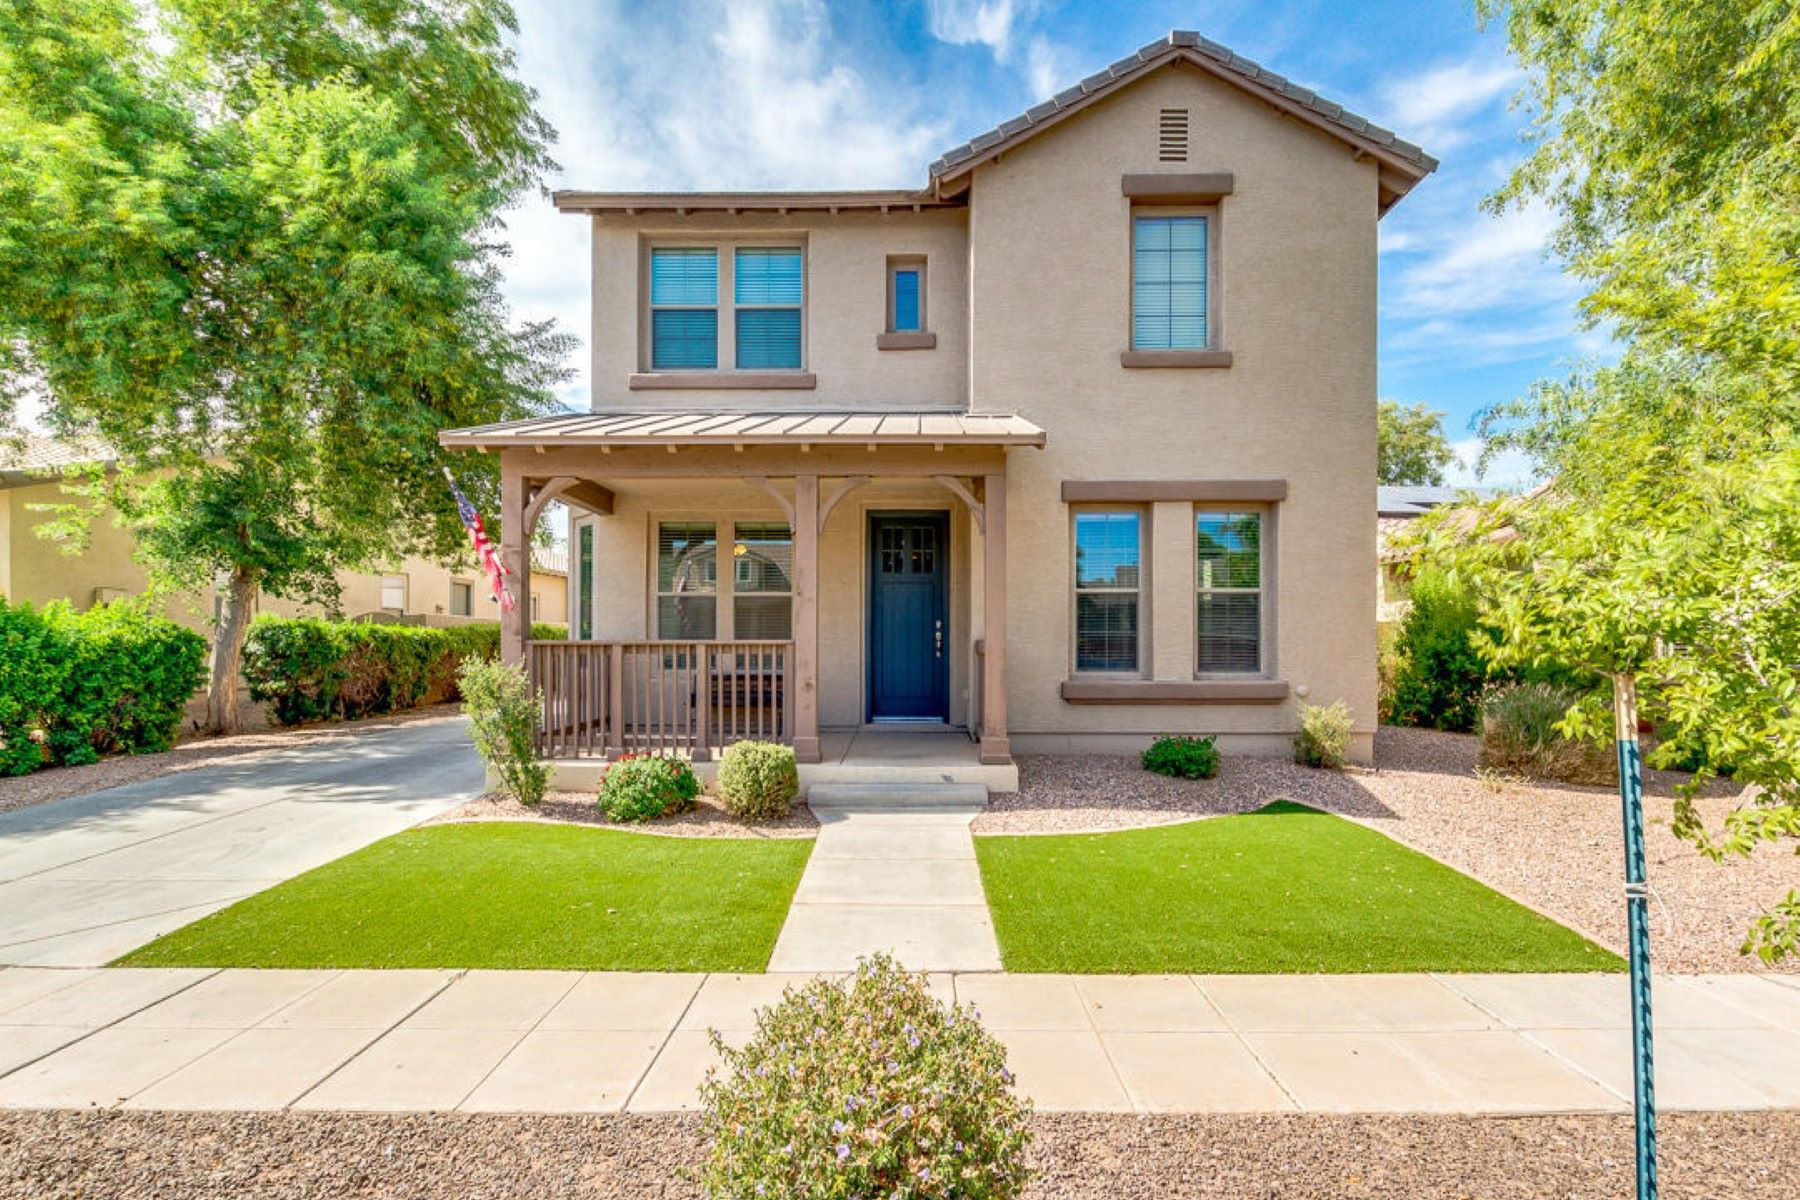 Single Family Homes for Sale at Marley Park 15402 W OLD OAK LN Surprise, Arizona 85379 United States